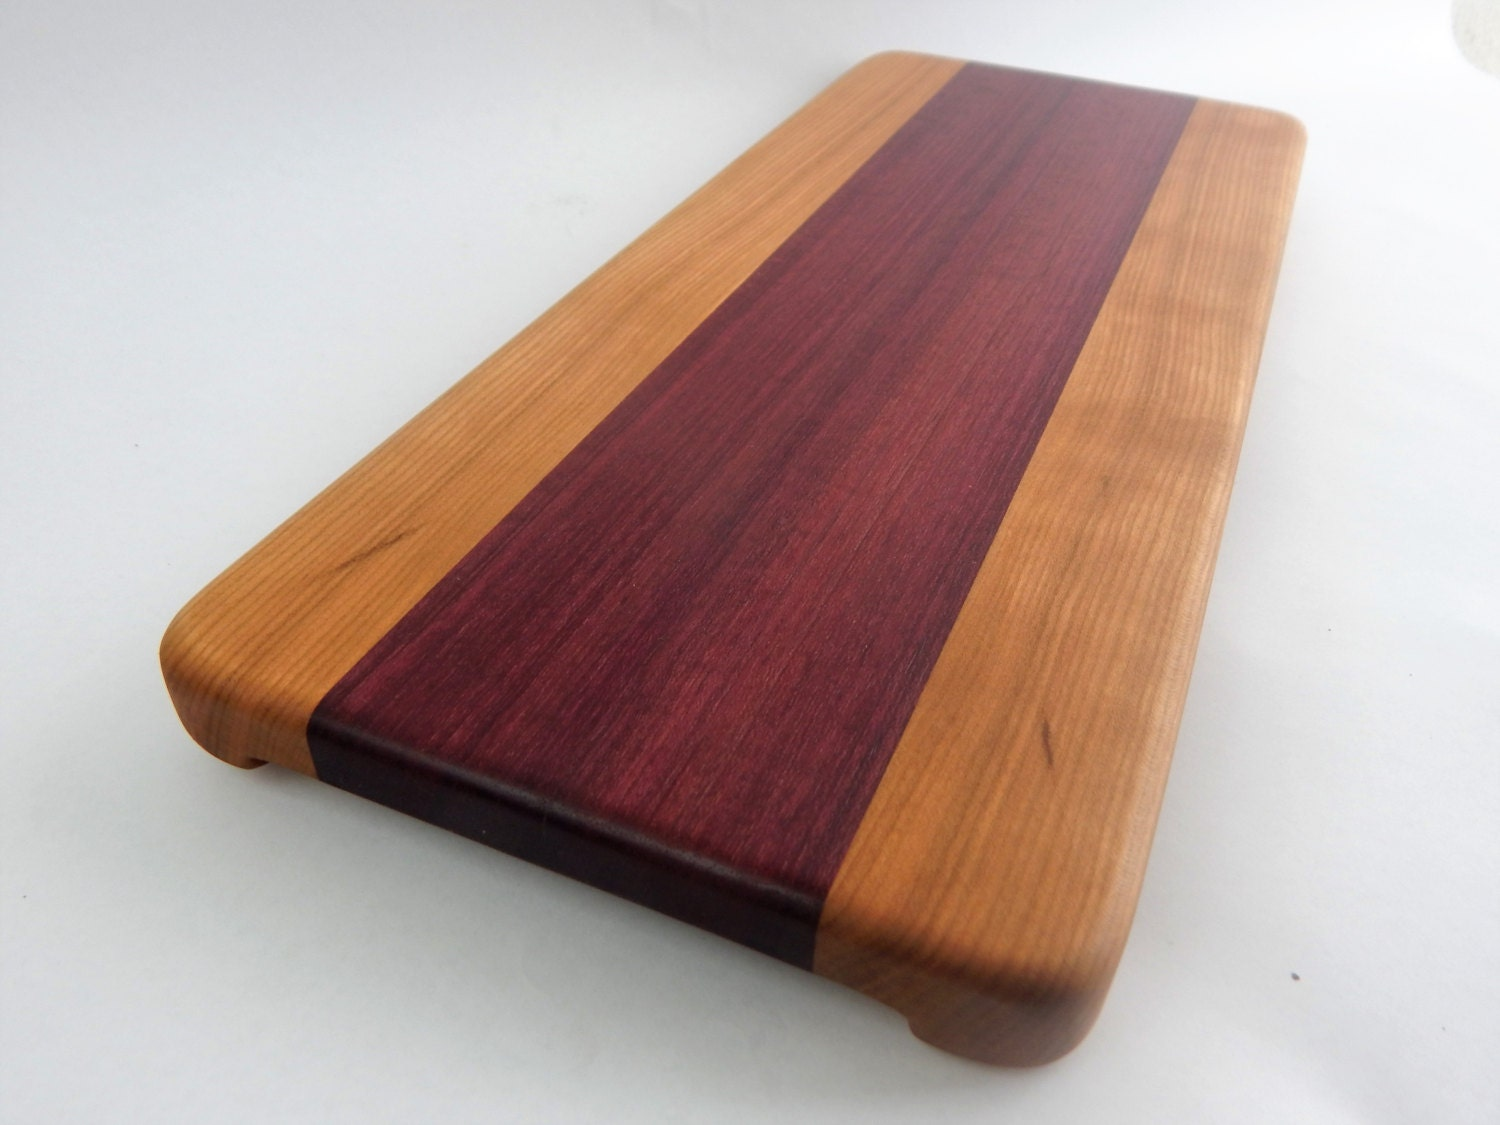 Handcrafted wood cutting board edge grain cherry heart